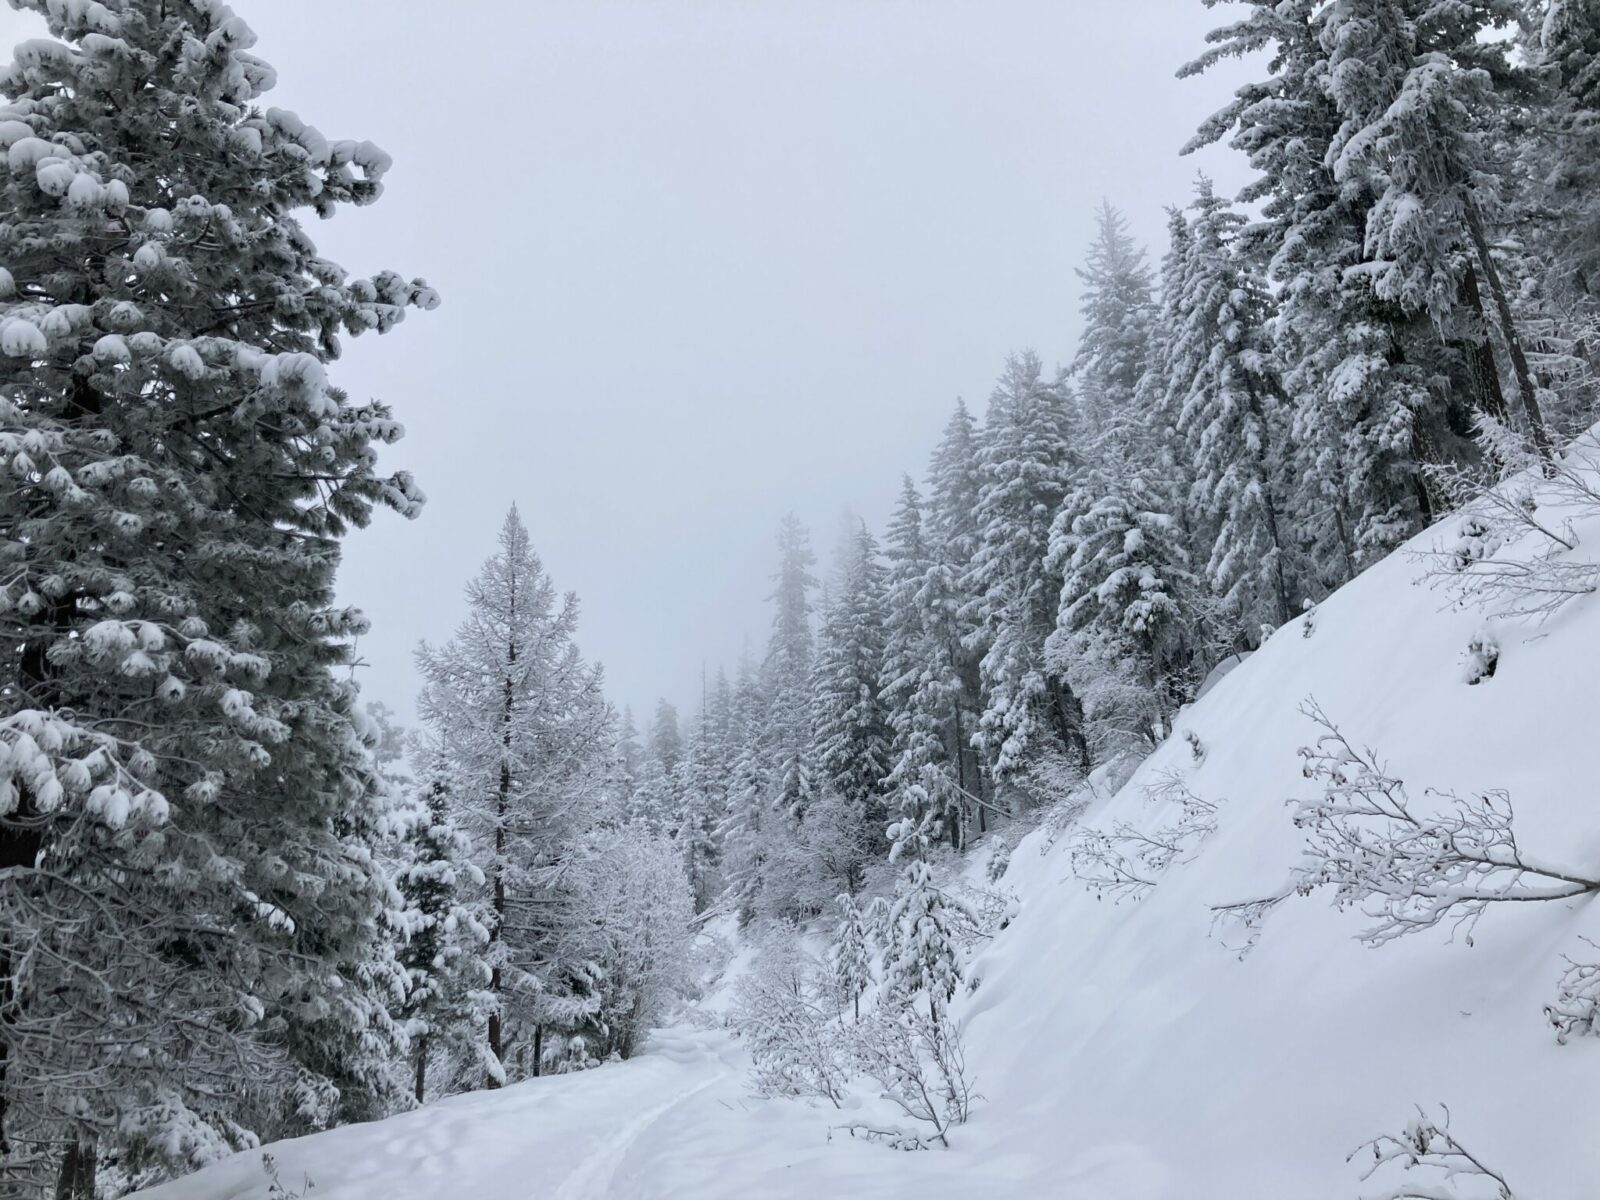 A closed forest service road covered in snow with snowshoe tracks. There is forest with snow covered trees next to the trail